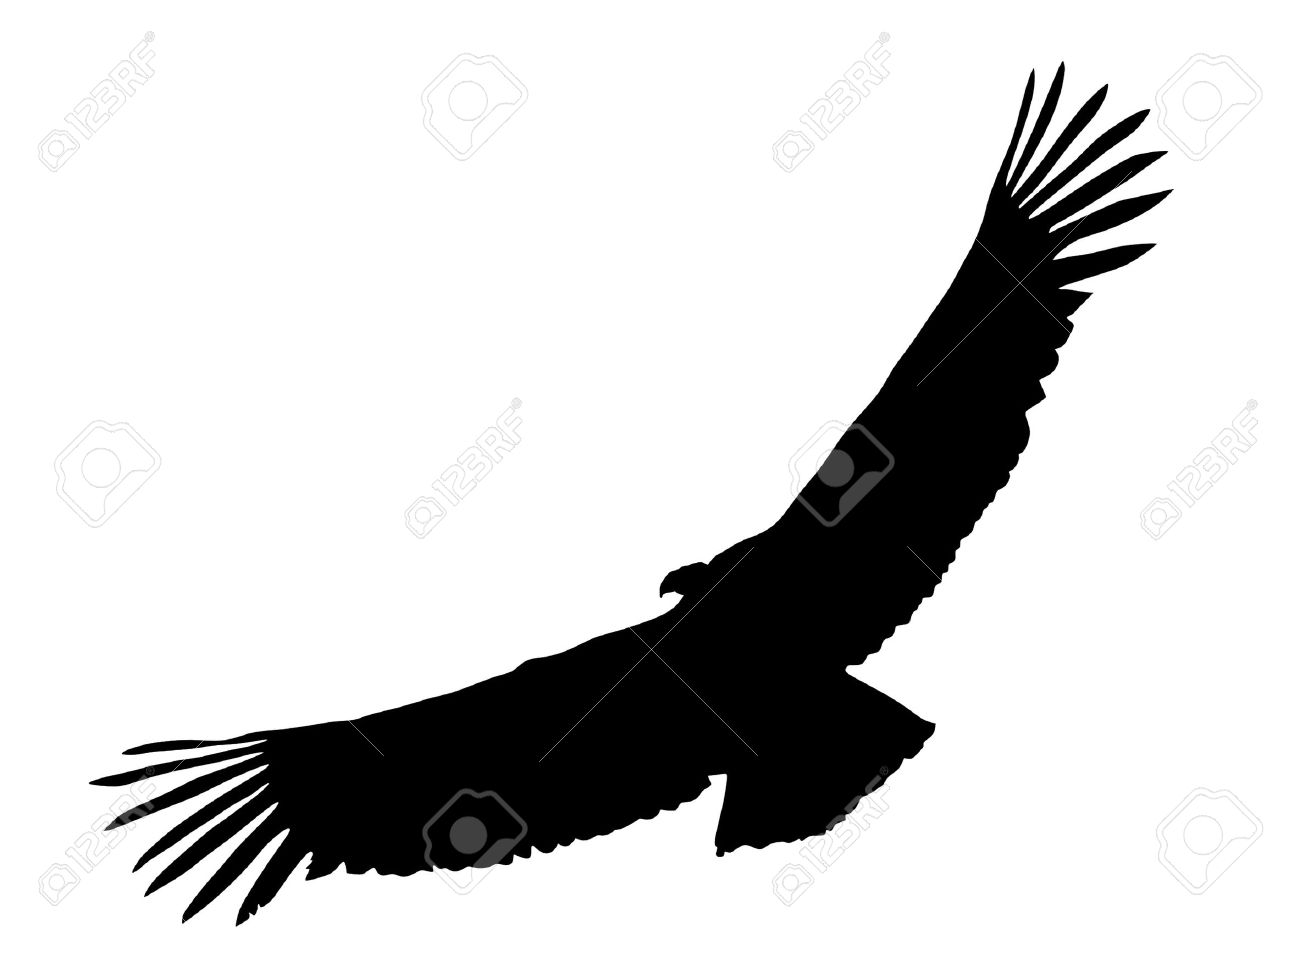 Illustration In Style Of Black Silhouette Of Condor Royalty Free.